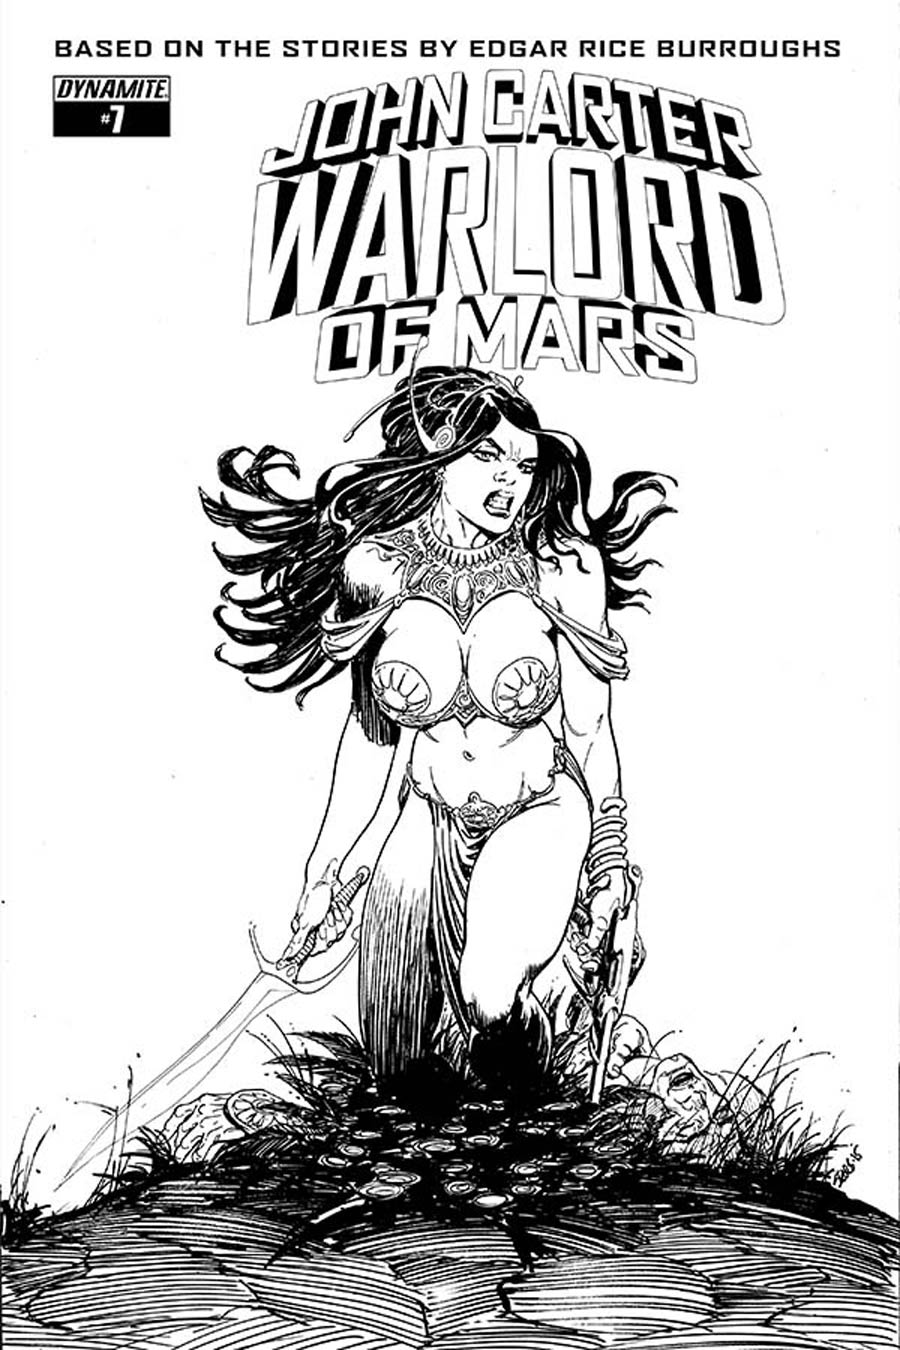 John Carter Warlord Of Mars Vol 2 #7 Cover E Incentive Bart Sears Black & White Cover